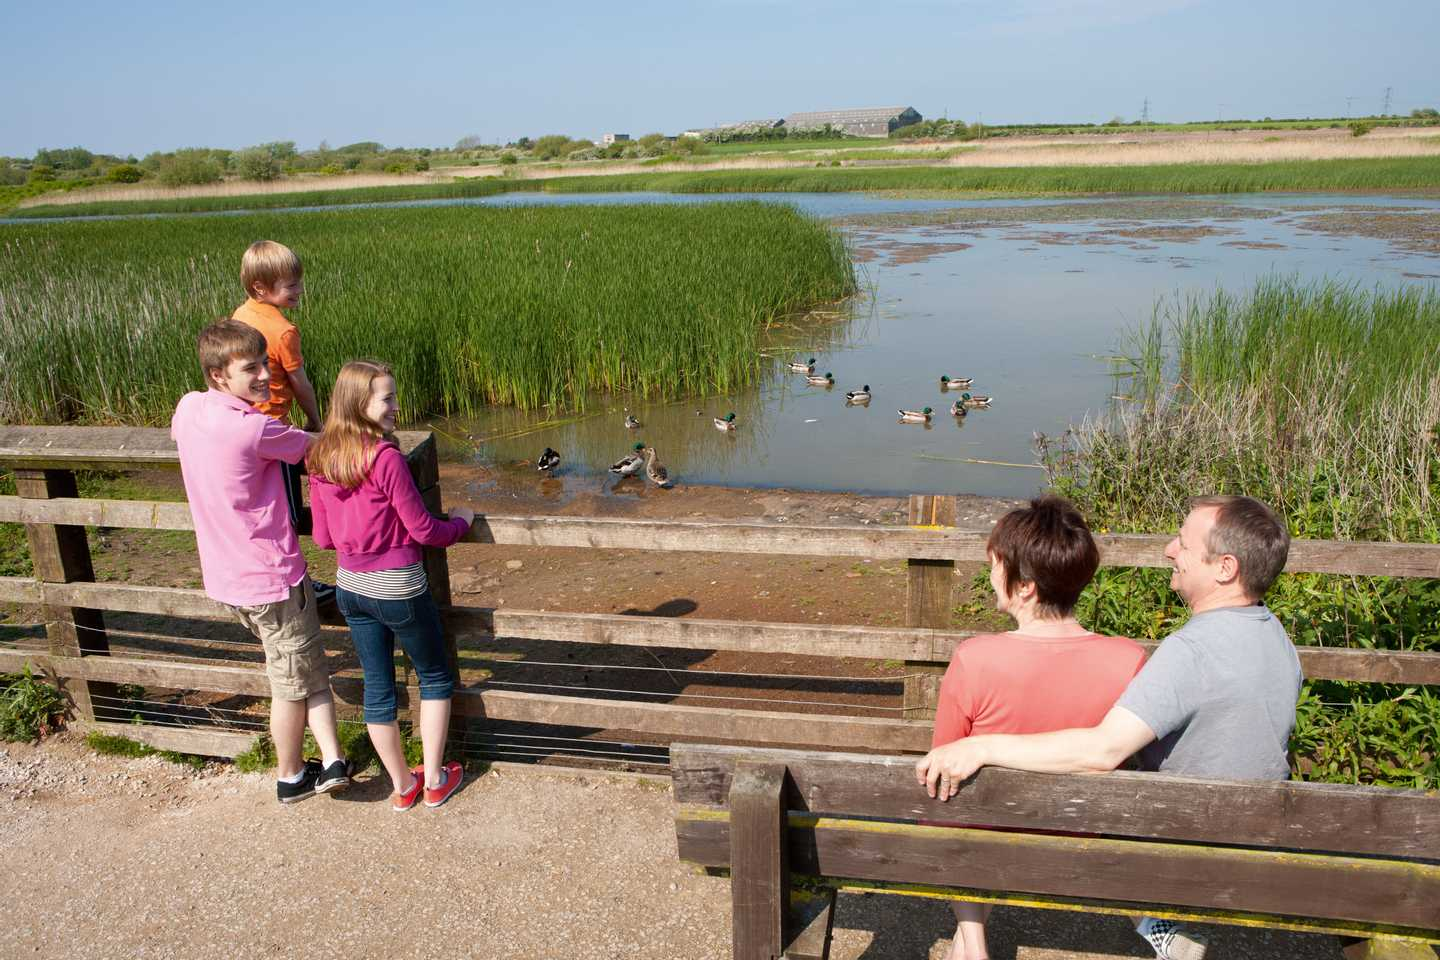 Guests relaxing by the mere at Marton Mere